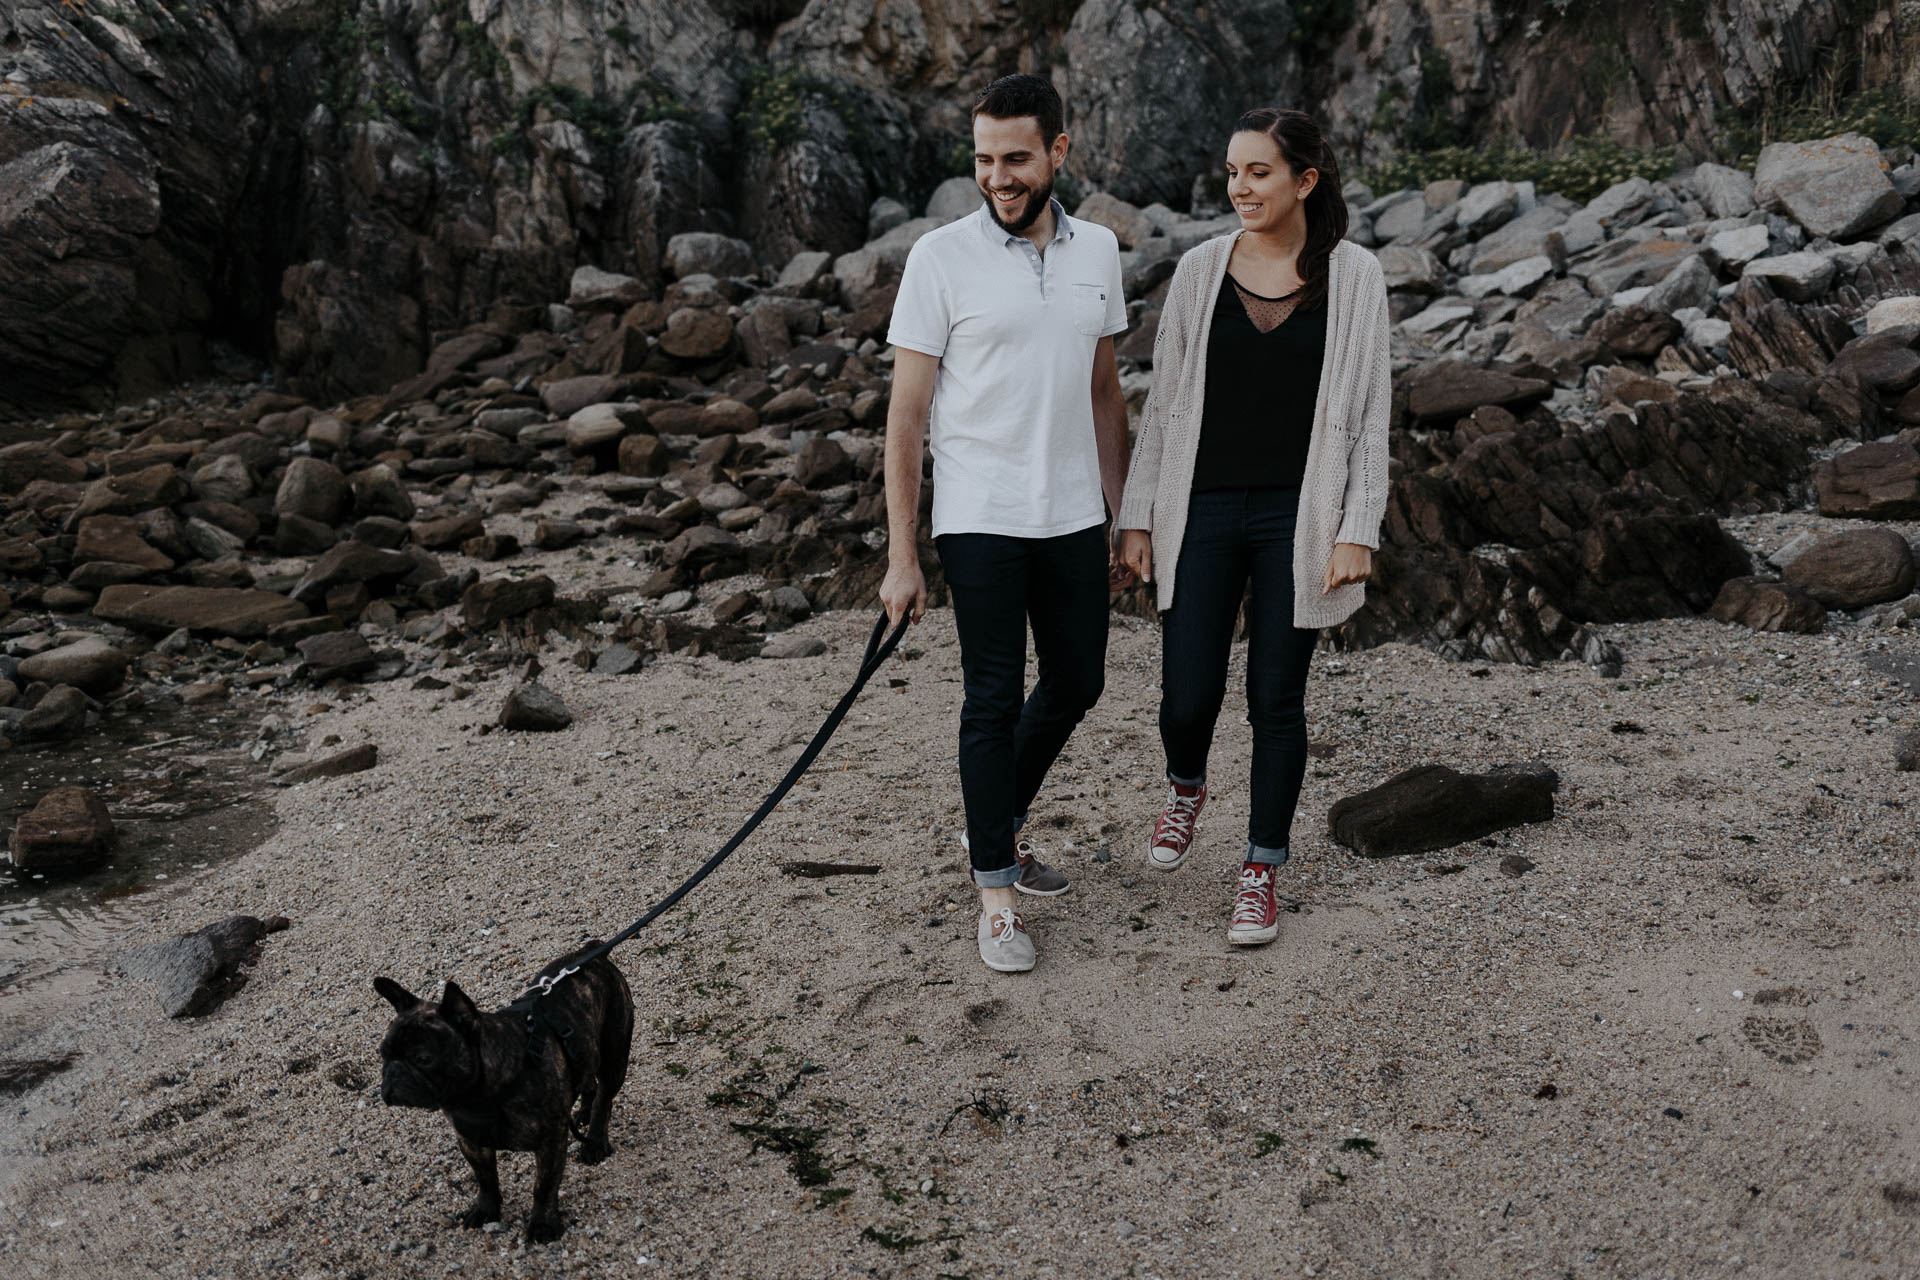 engagement_session_beach_france_flavie_nelly_french_photographer-27